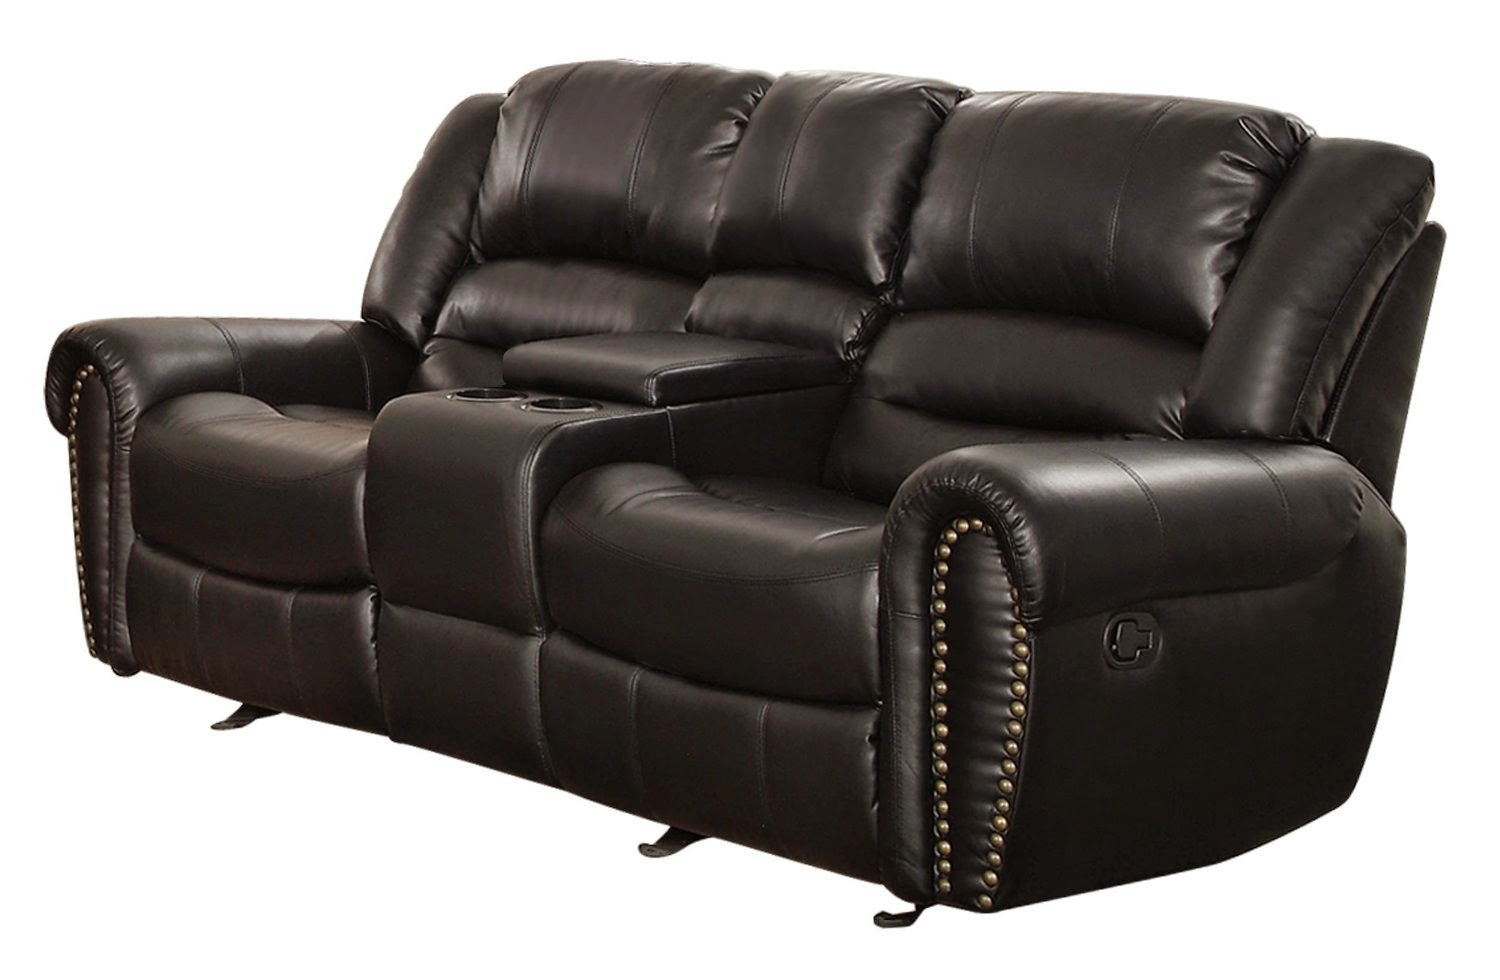 Reclining sofa loveseat and chair sets march 2015 Leather loveseat recliners